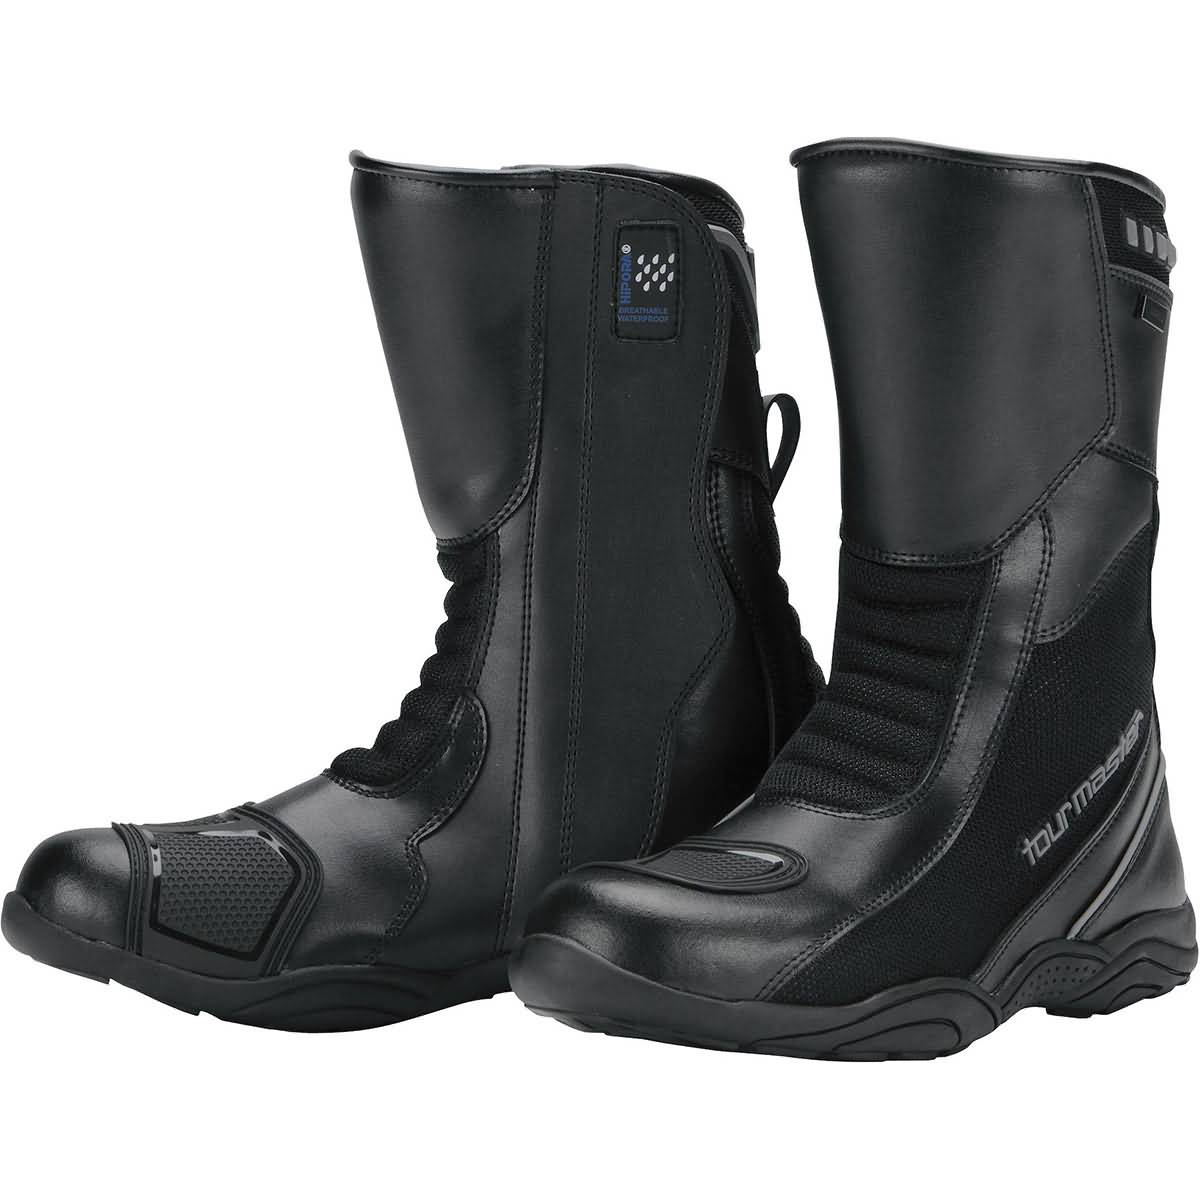 Tour Master Solution Air WP Women's Street Boots-8605